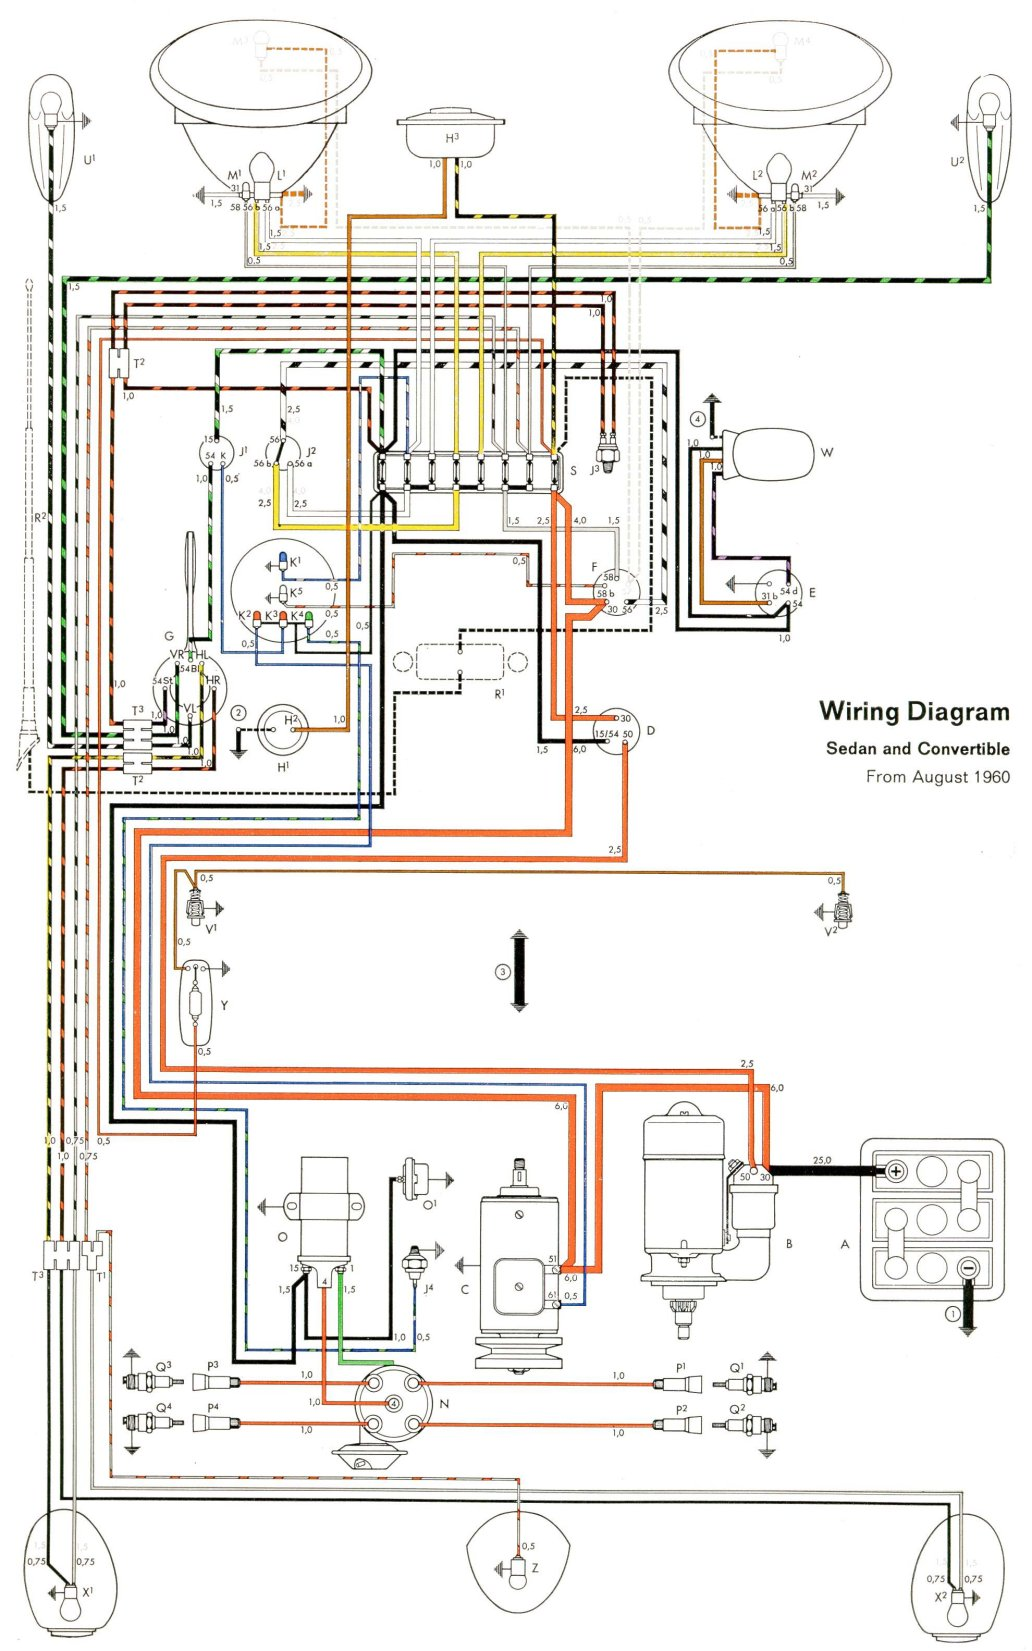 1974 Super Beetle Wiring Diagram Libraries Raypak Boiler 183 Thesamba Com Type 1 Diagrams1974 4